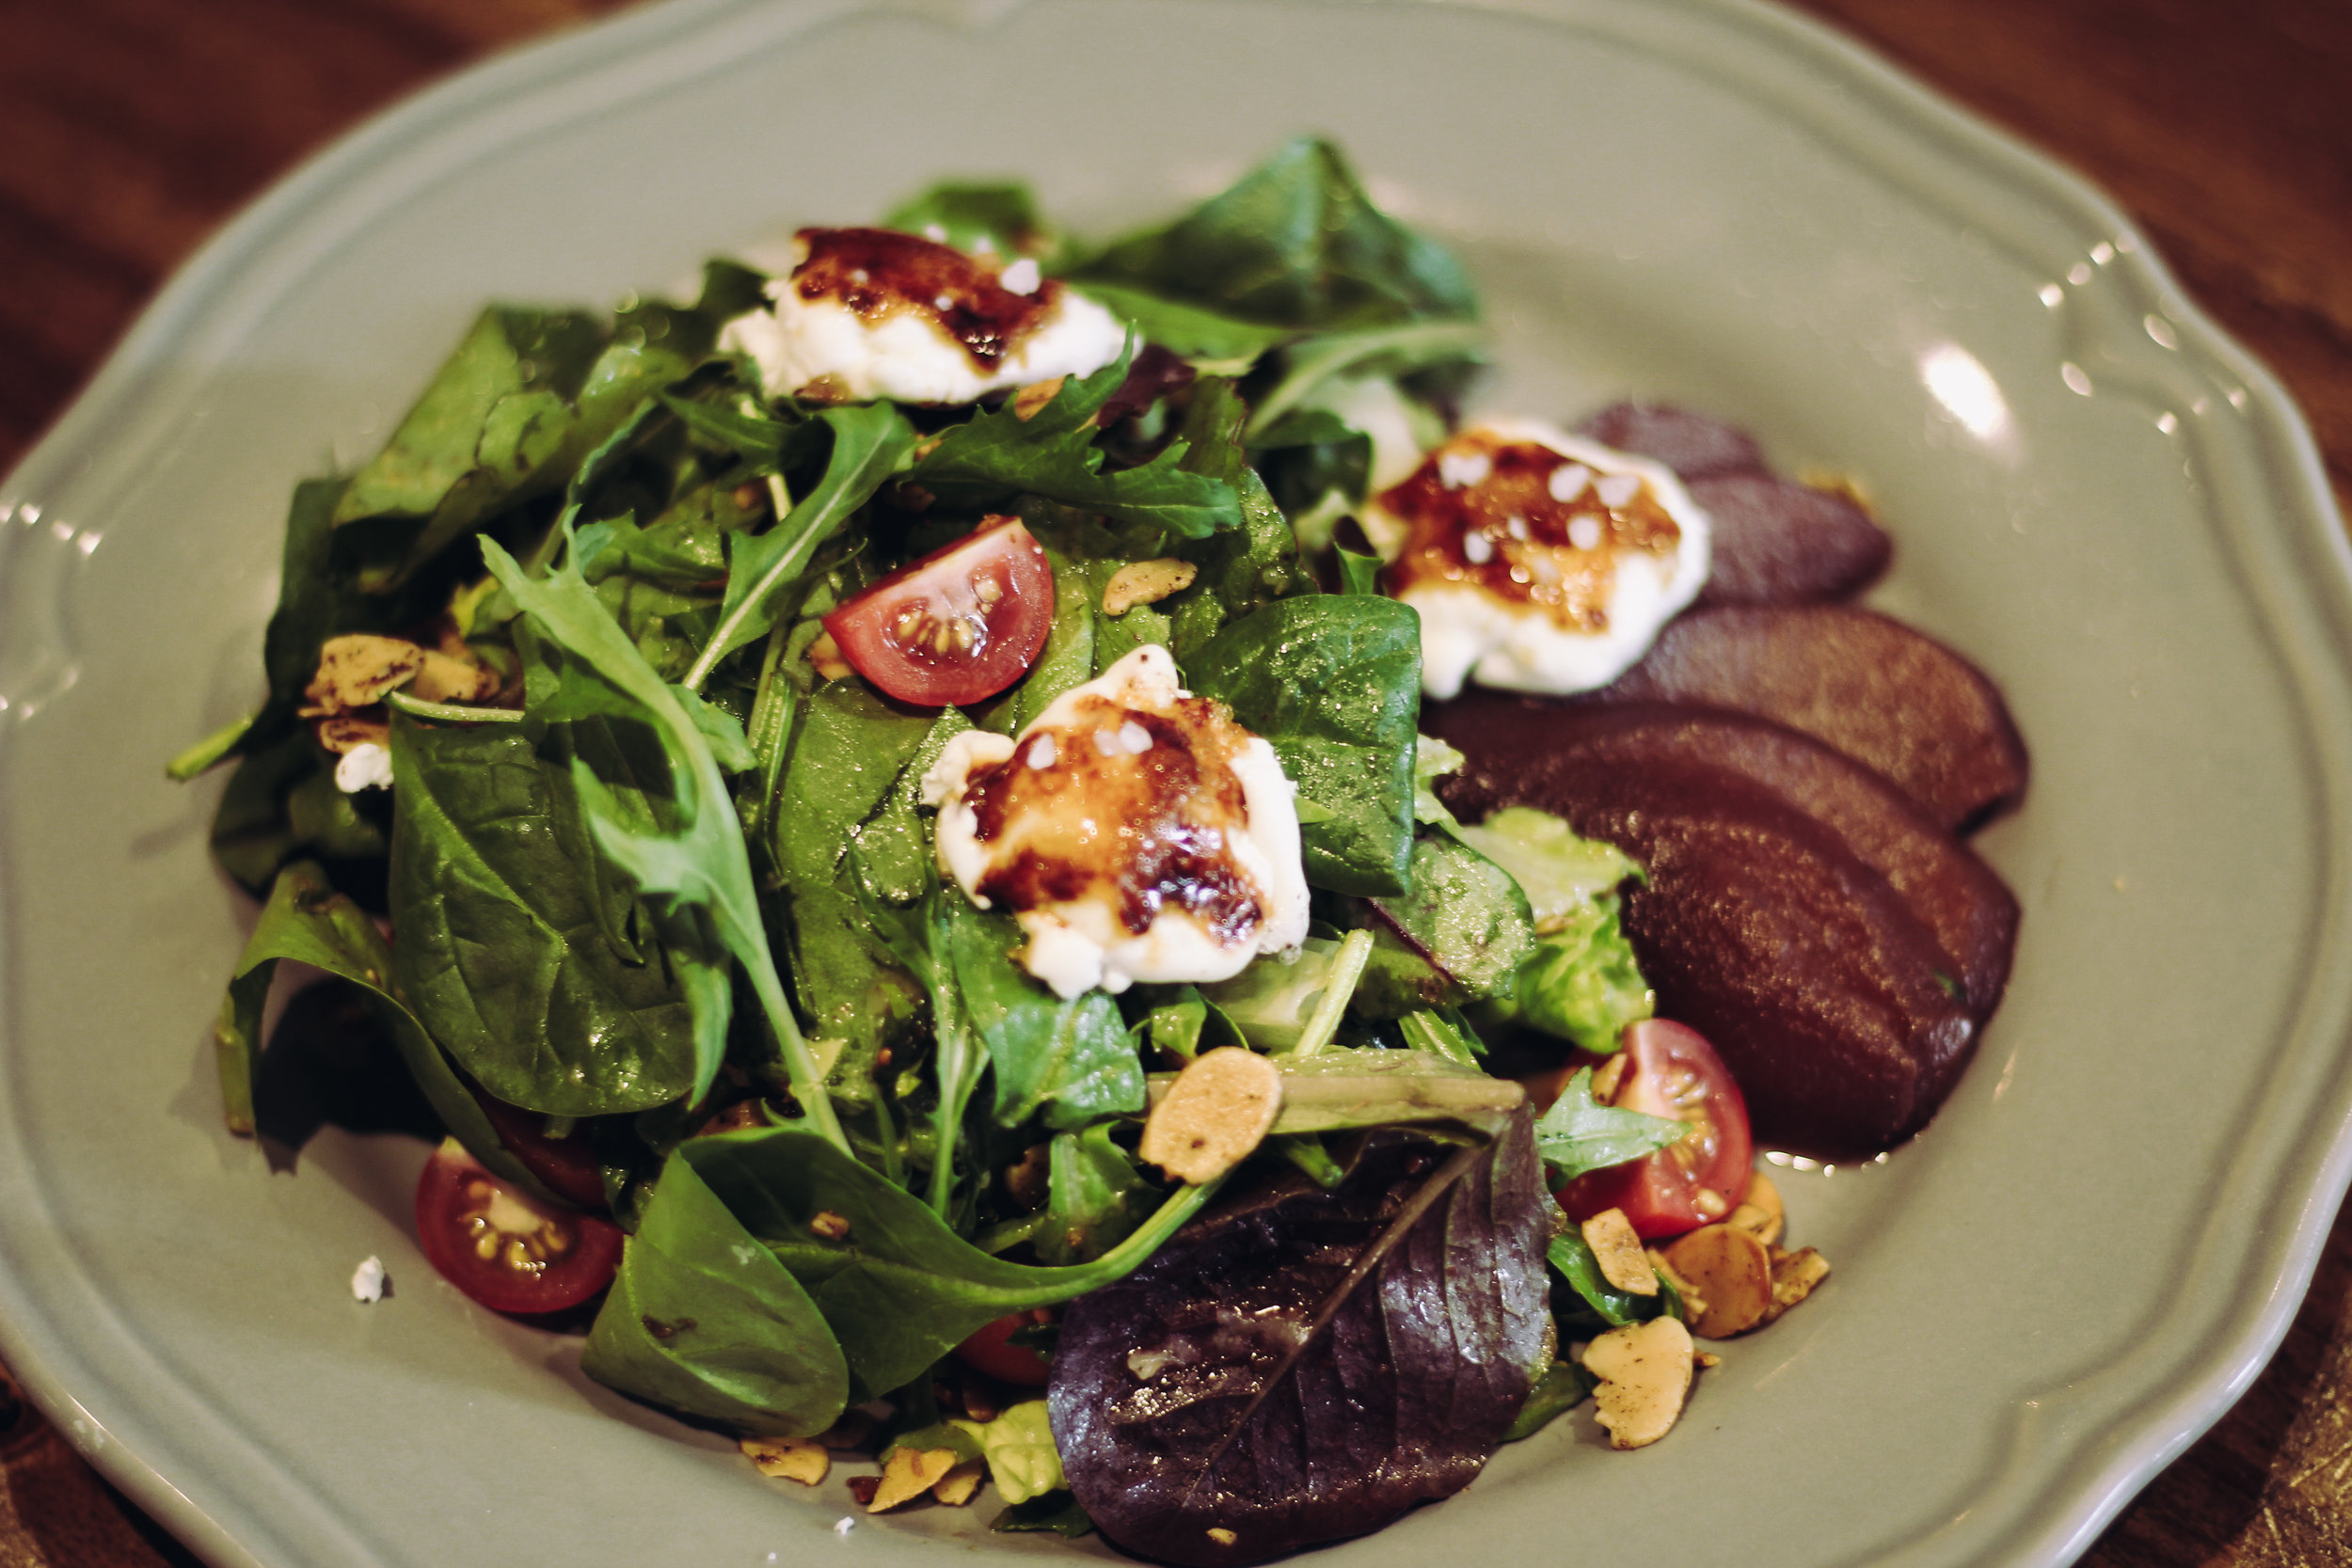 Local greens with fresh mozzarella and balsamic, topped with sea salt.